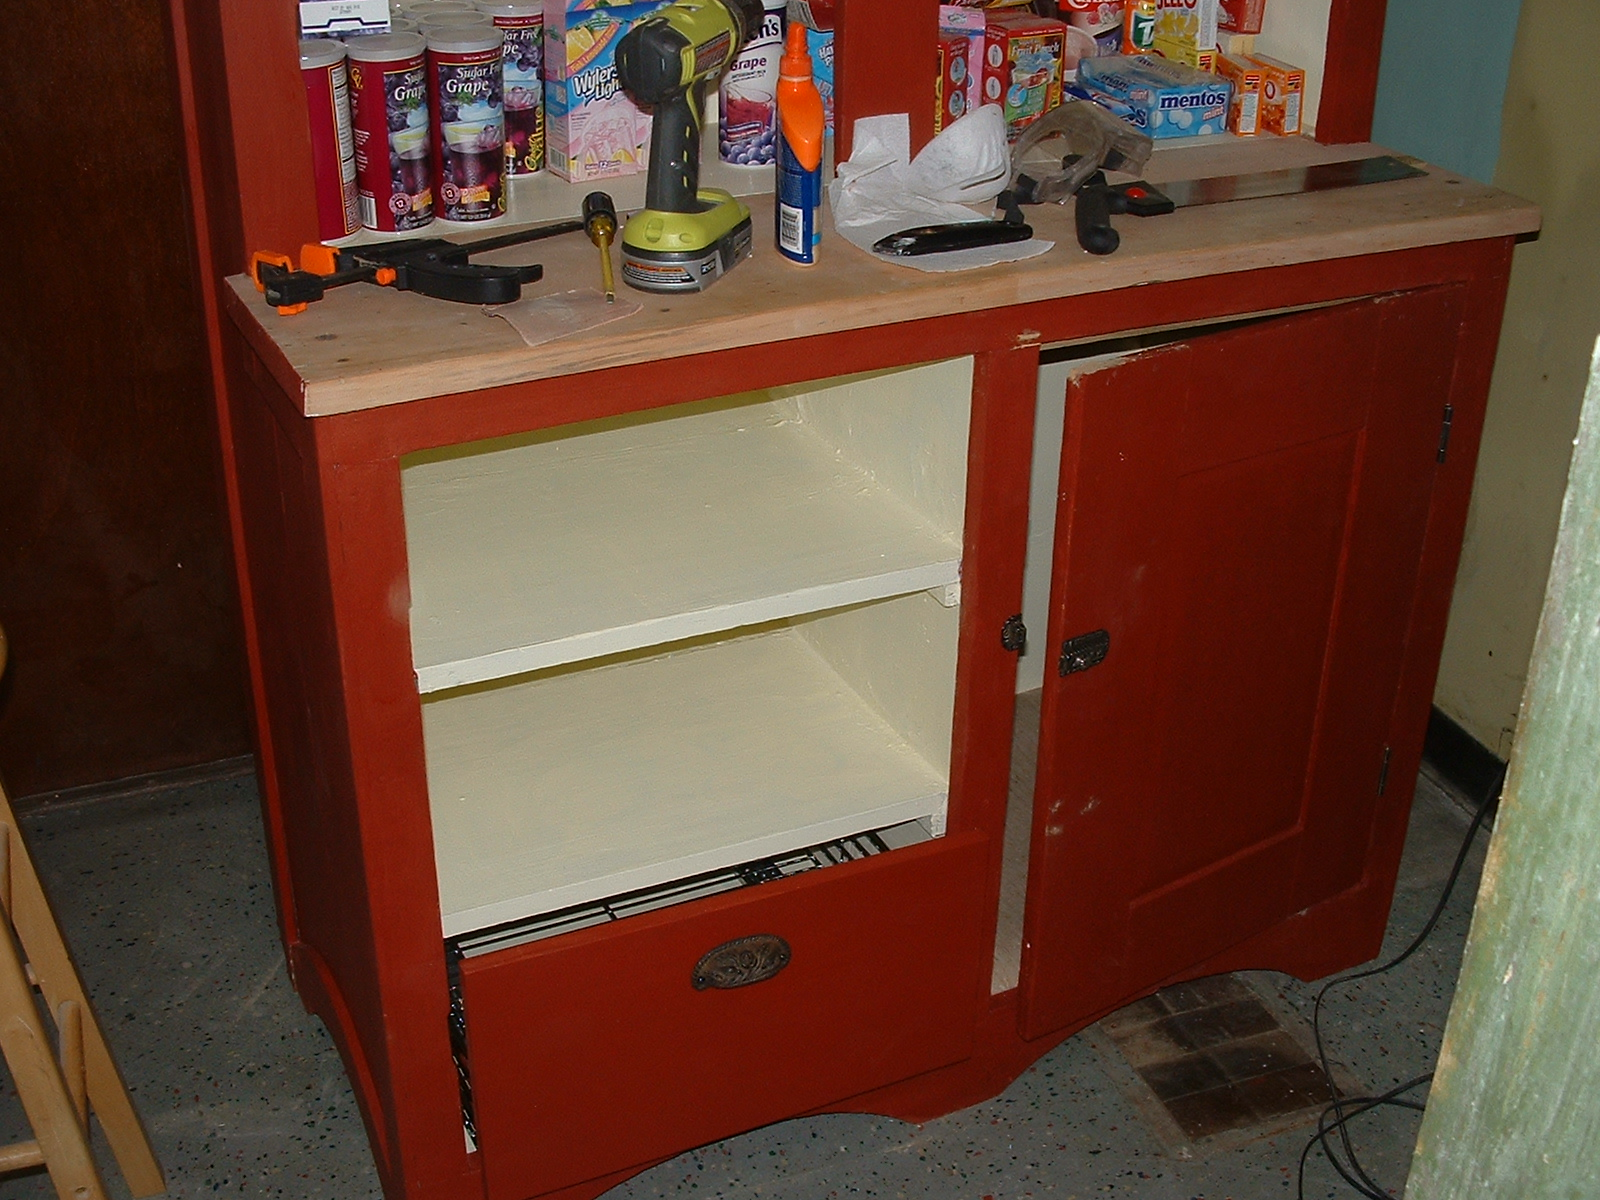 Picture of Refinishing the Cupboard to the Original Finish.